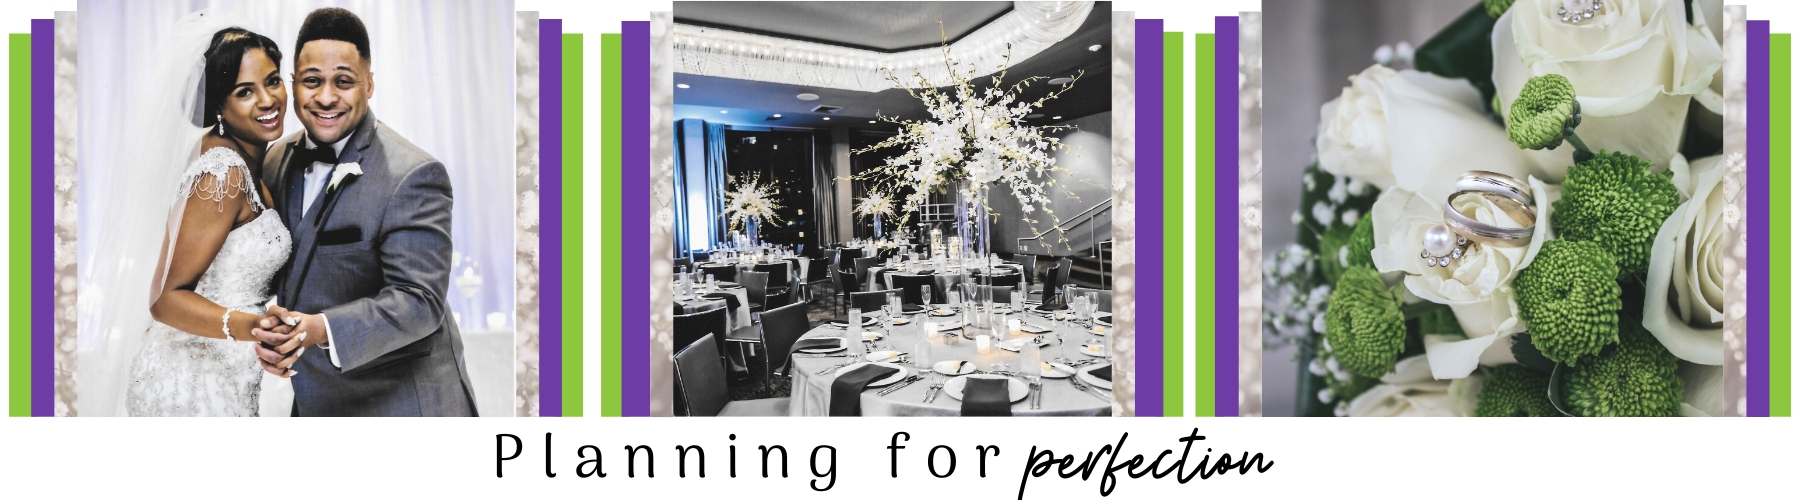 Wedding planner for a perfect wedding